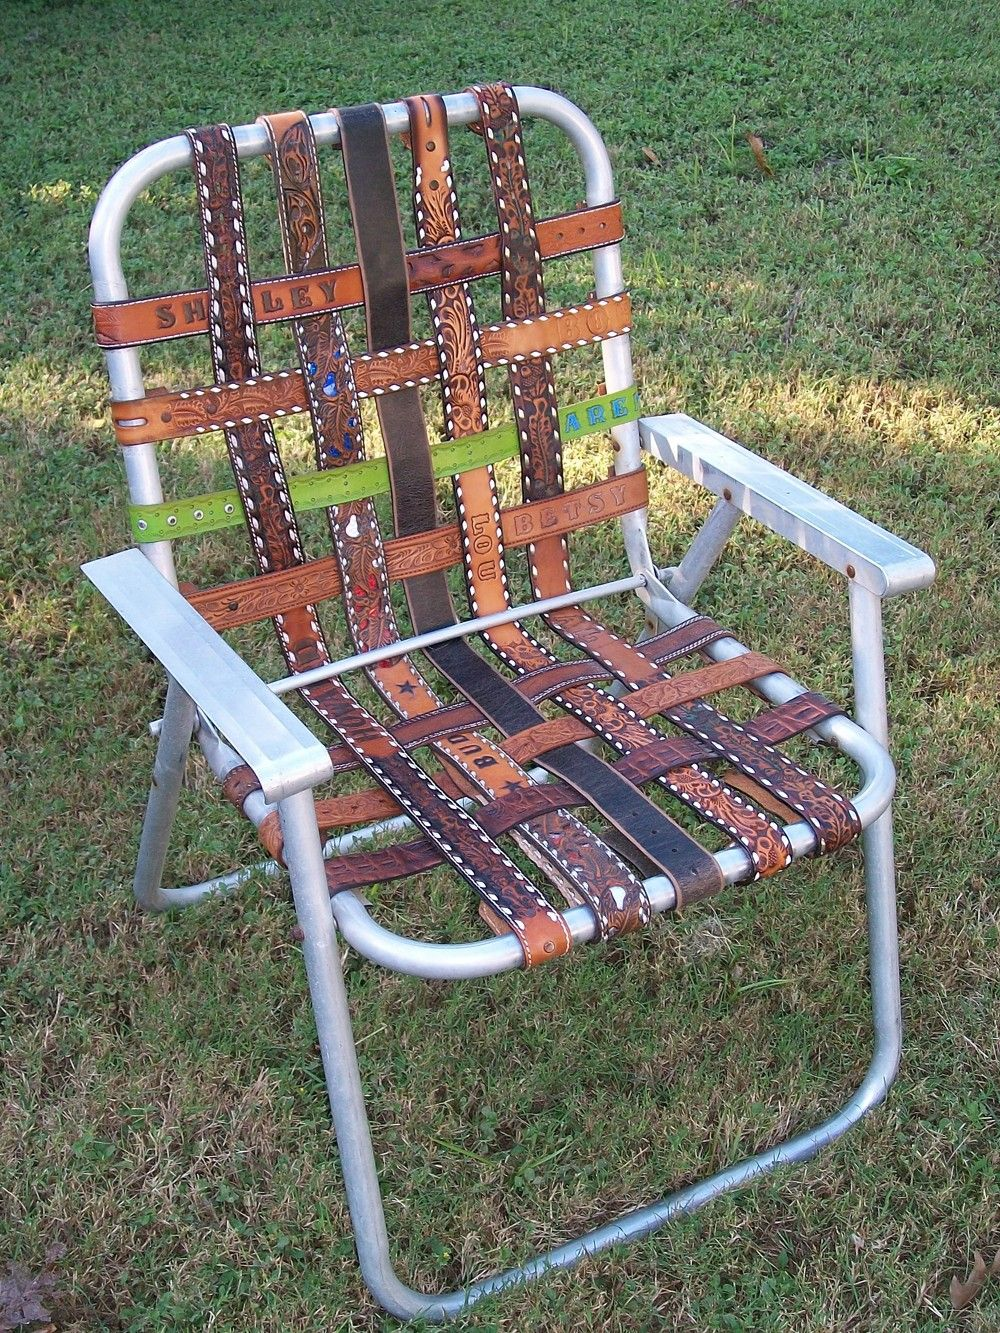 Vintage Aluminum Folding LAWN CHAIR Re Webbed With Vintage Western BELTS  Yee Haw.